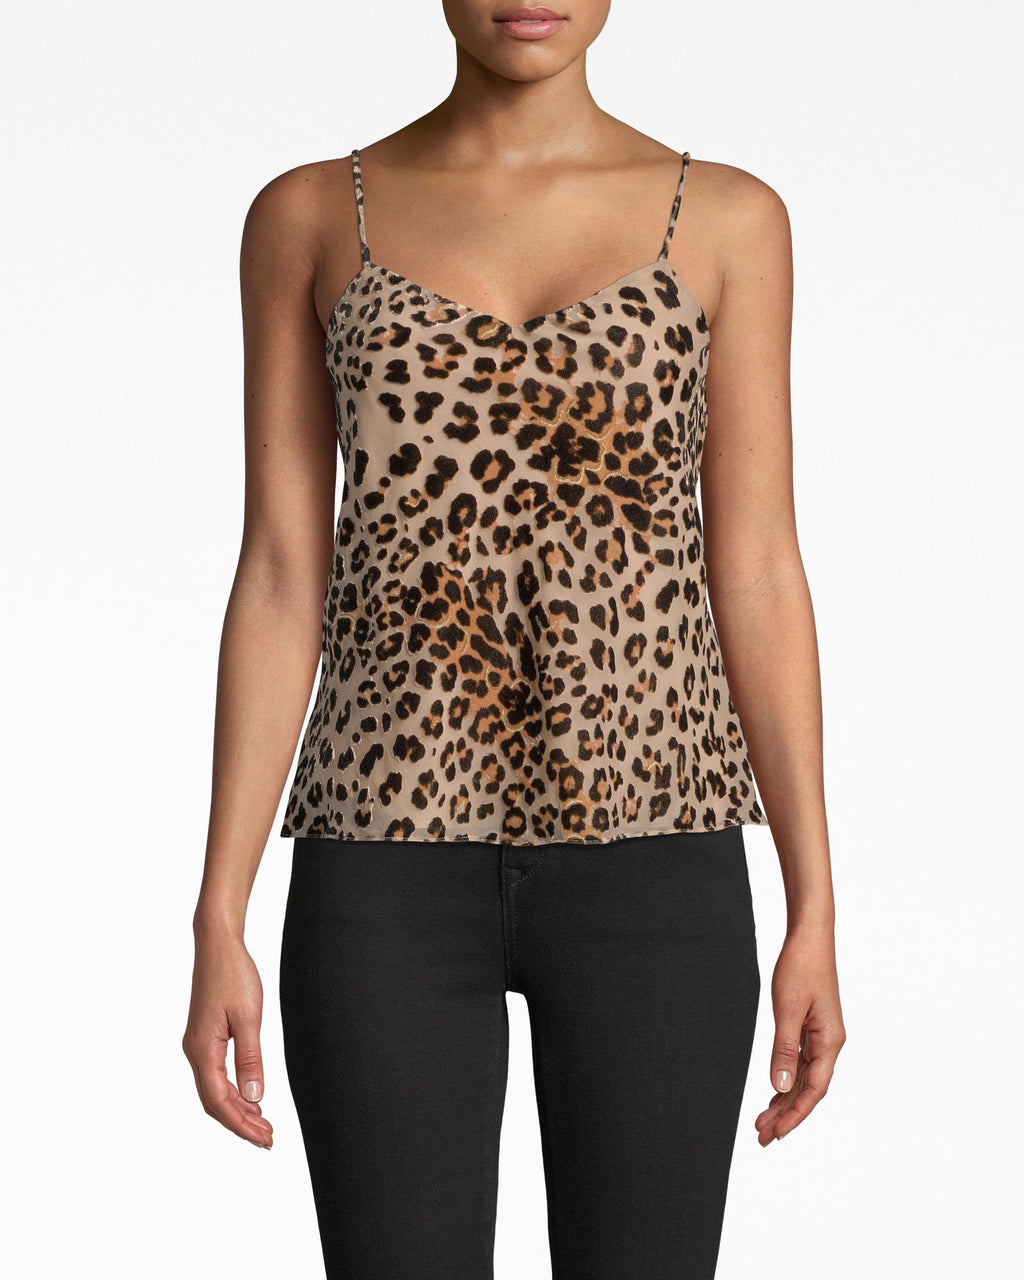 AS20057 - LEOPARD BURNOUT CAMI - tops - blouses - A fierce update to a favorite style. Spaghetti straps and a loose hem make this leopard cami an easy grab.